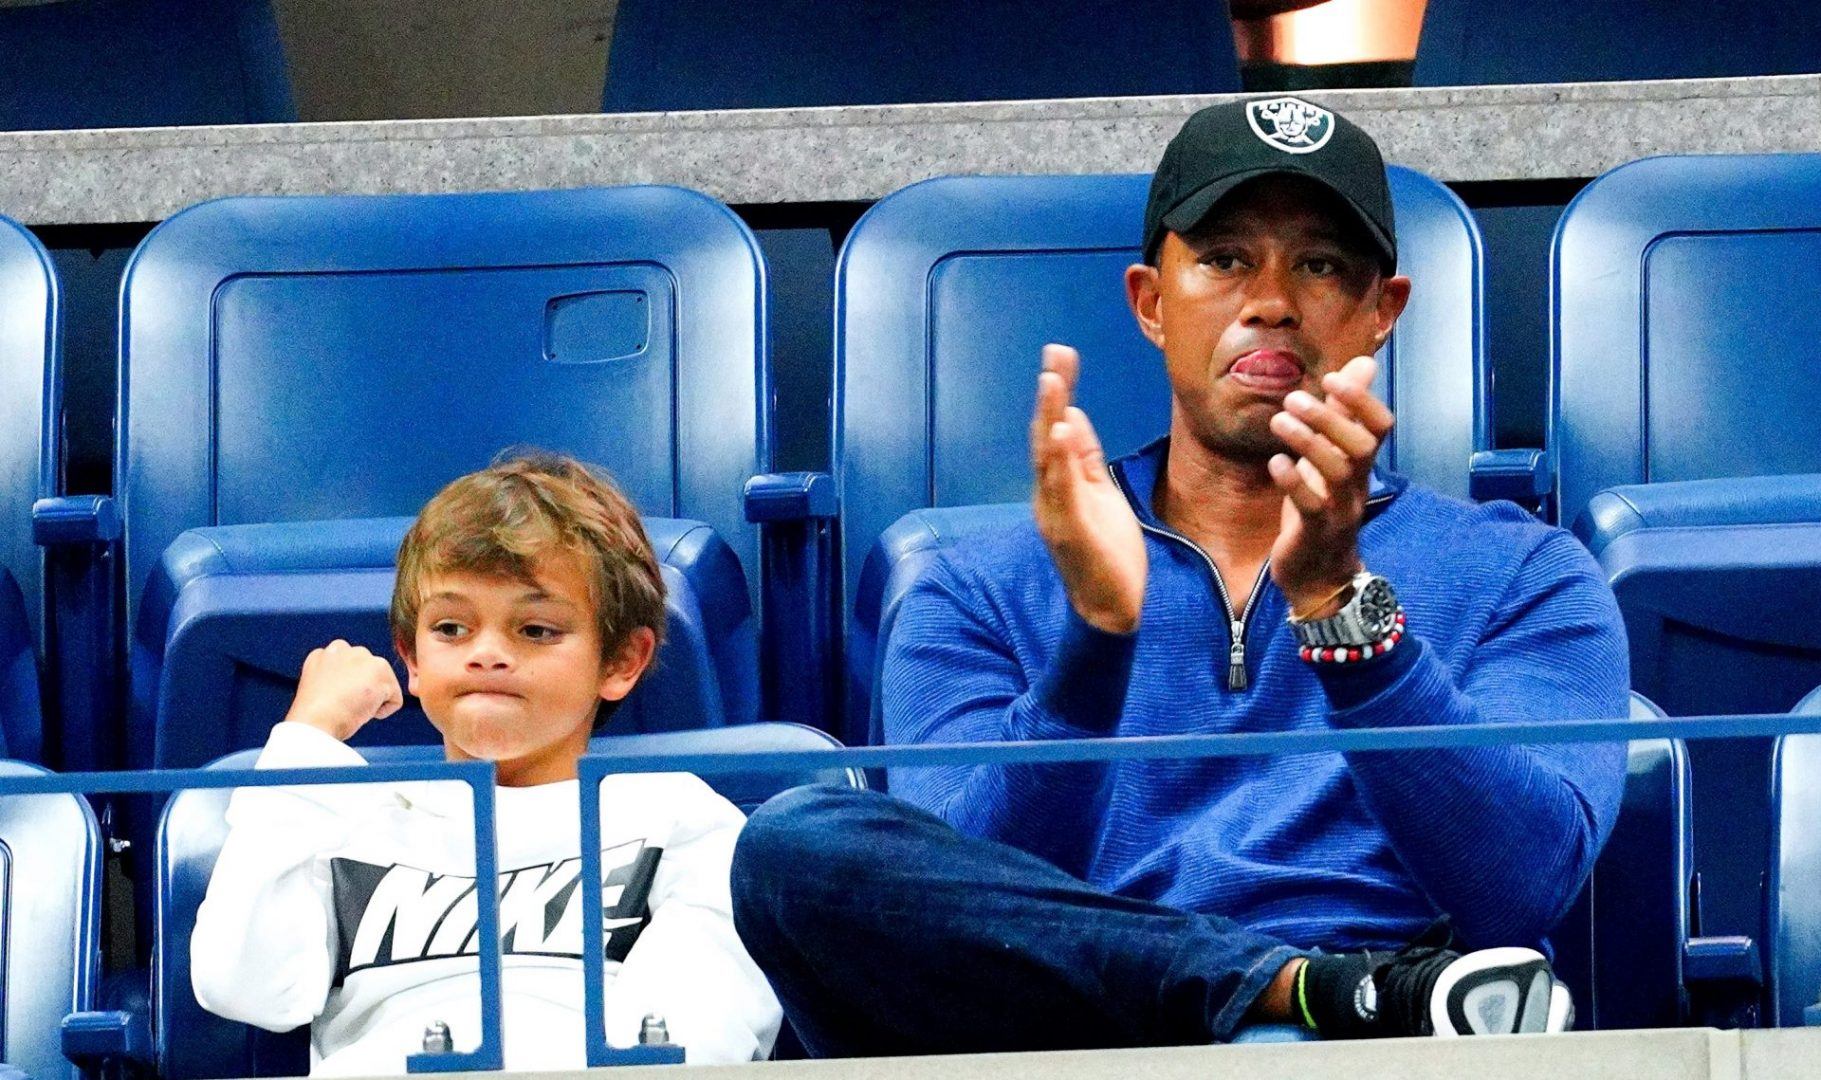 Tiger Woods with his son, Charlie